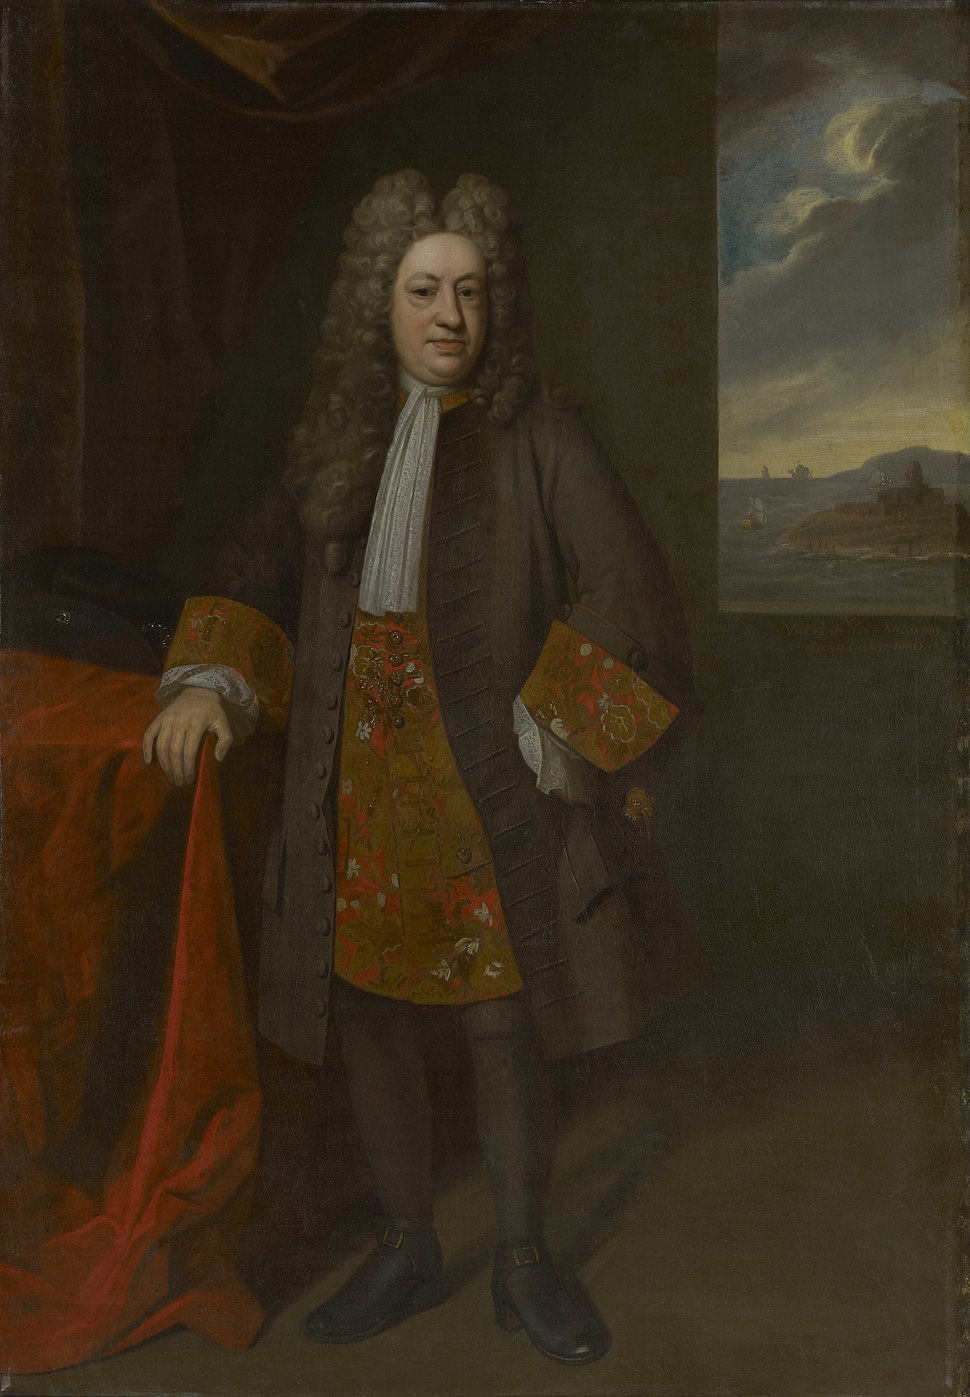 Elihu Yale by Enoch Seeman the younger 1717.jpeg